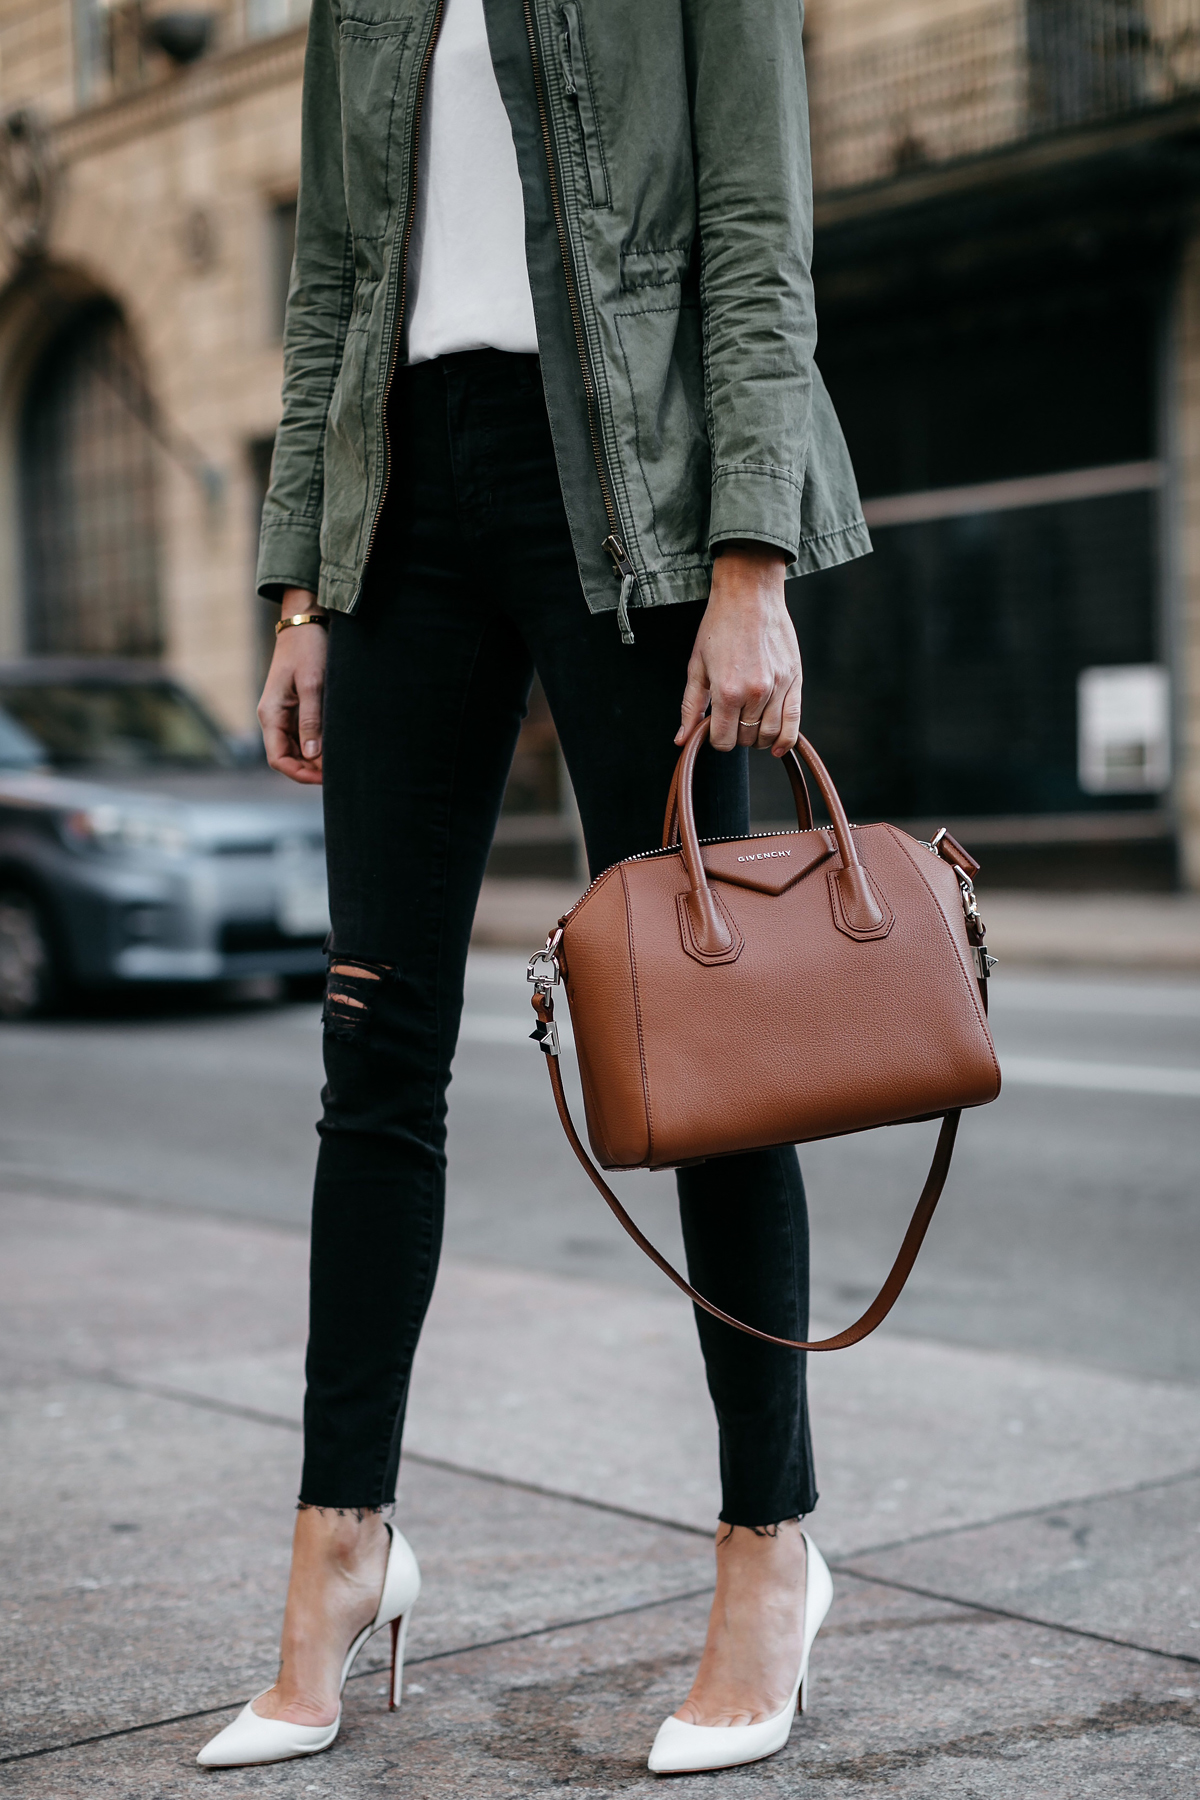 Woman Wearing Madewell Fleet Jacket Green Jacket White Tank Madewell Black Ripped Skinny Jeans Christian Louboutin White Pumps Givenchy Antigona Small Satchel Cognac Fashion Jackson Dallas Blogger Fashion Blogger Street Style